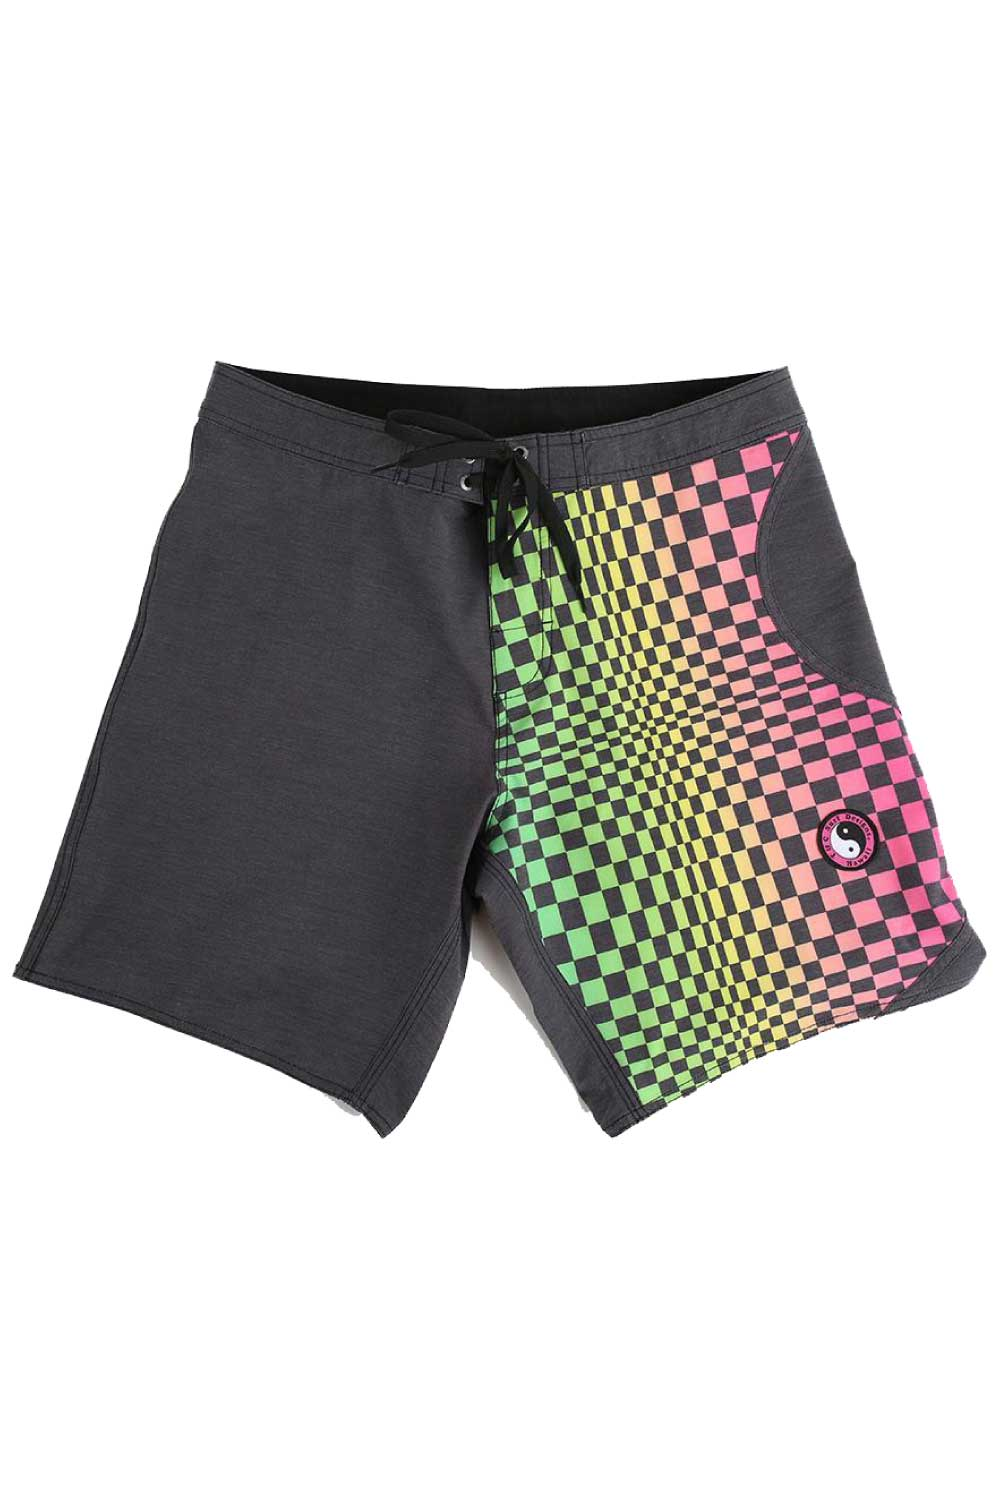 "Town & Country Ying Yang 17"" Men's Boardshorts Twisted Fade"